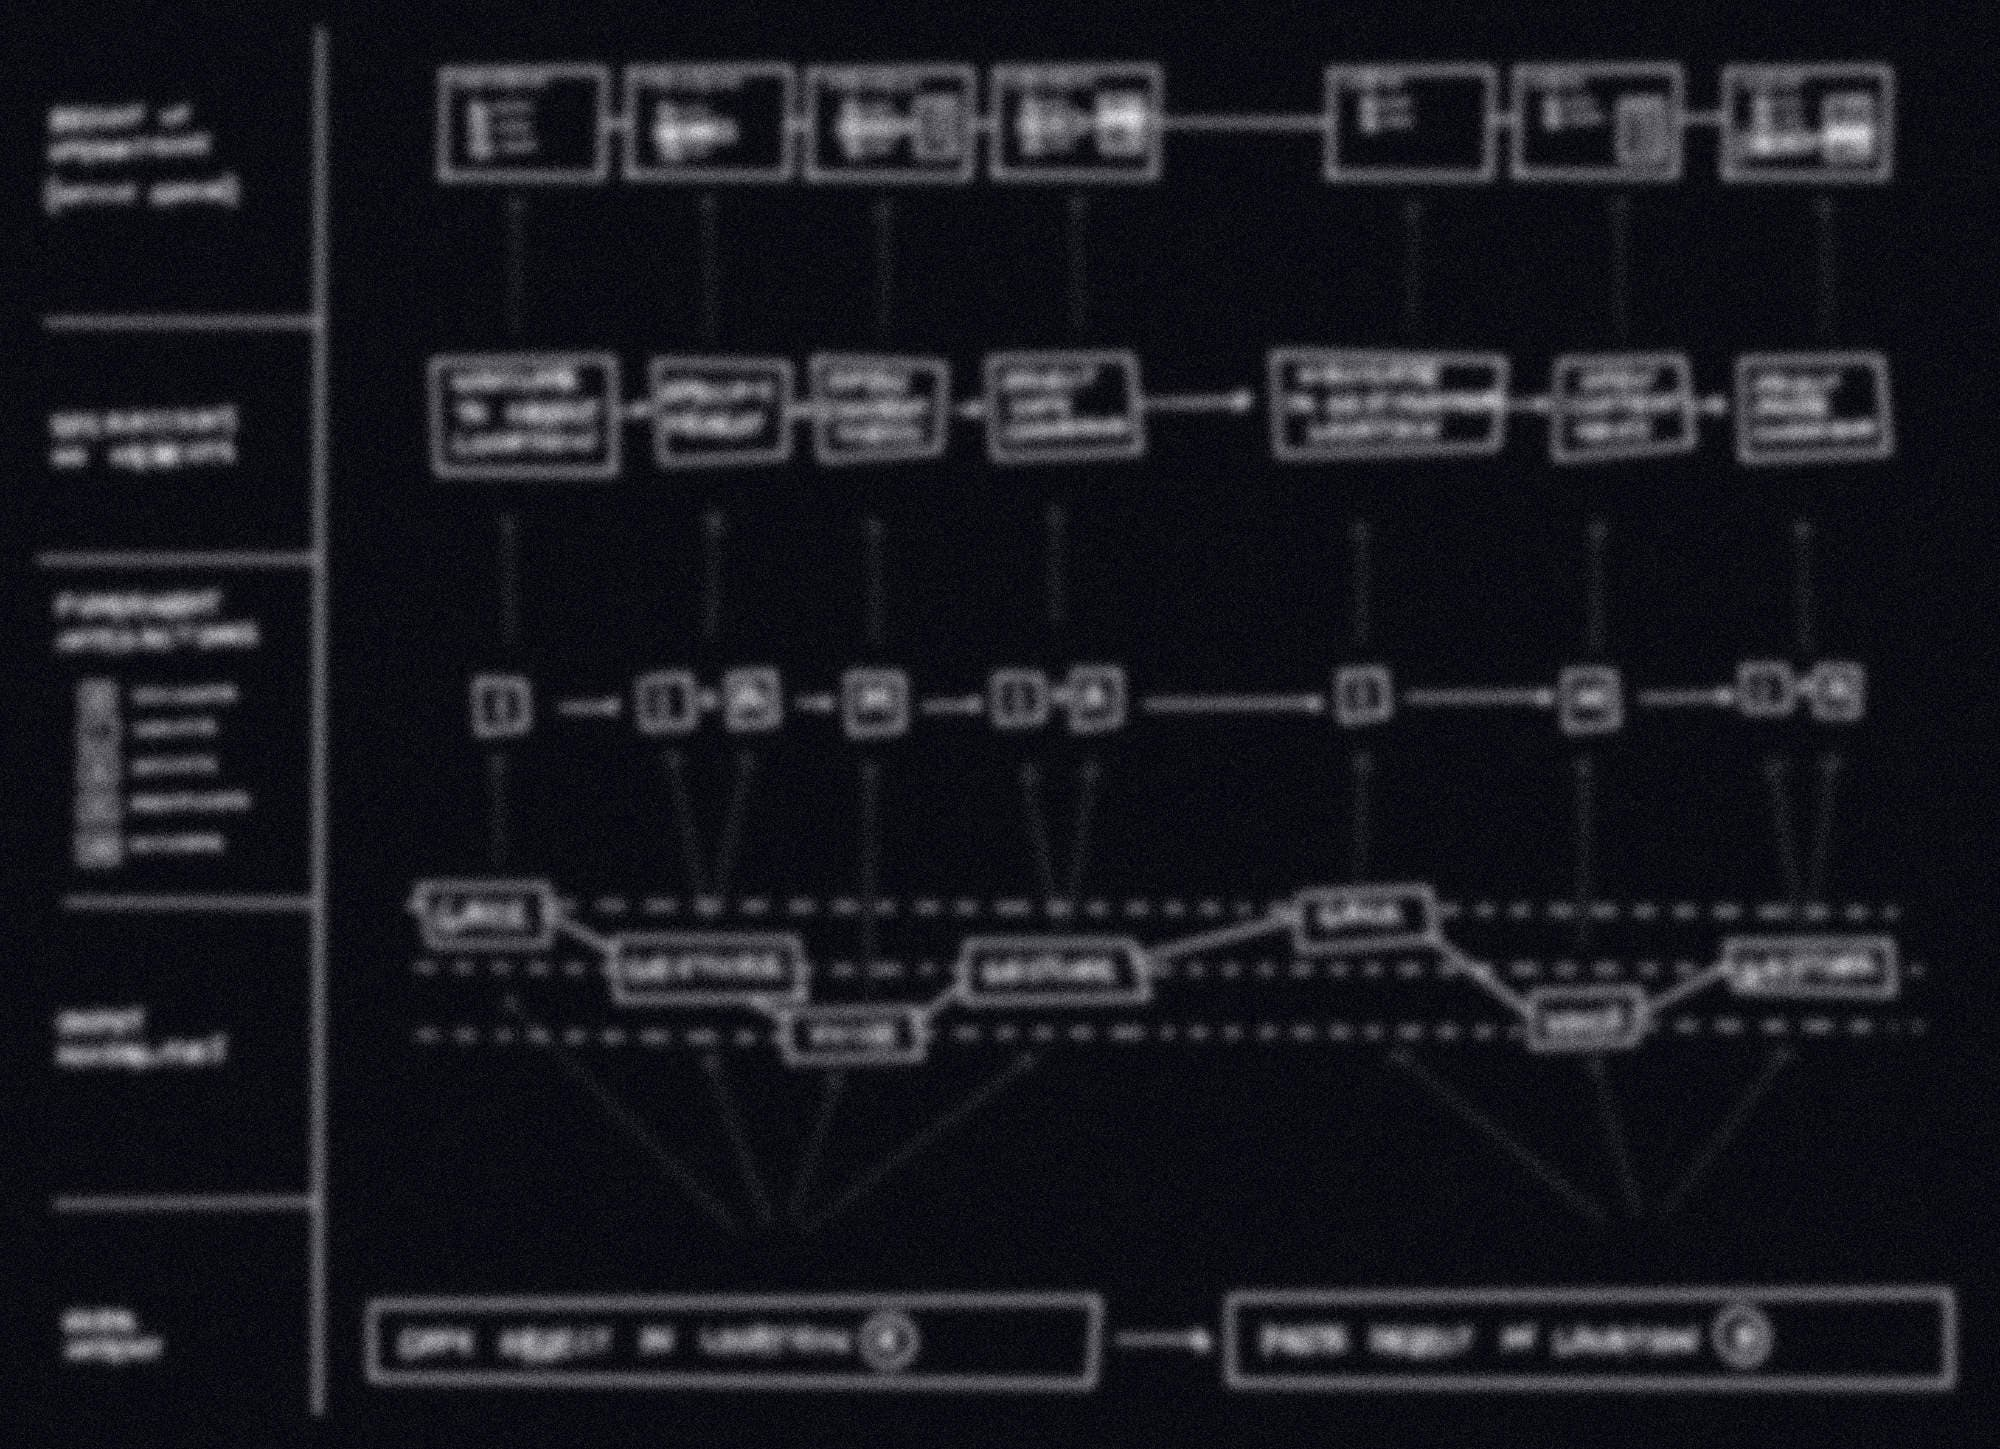 A redacted sketch of a flow chart project deliverable